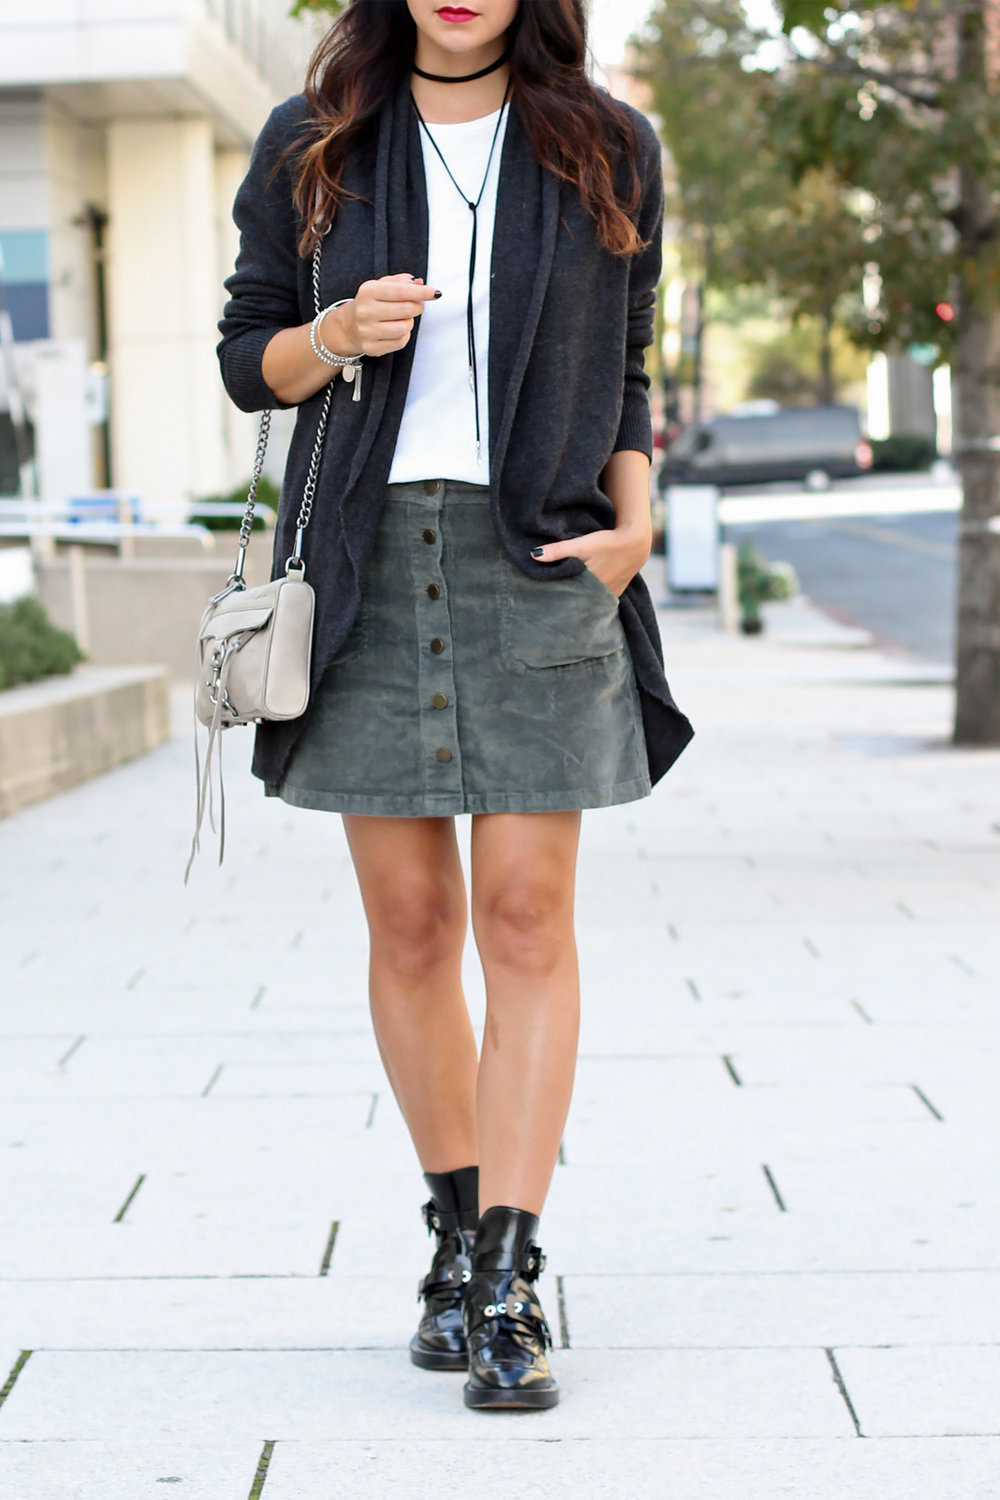 Ankle boots with skirt outfit